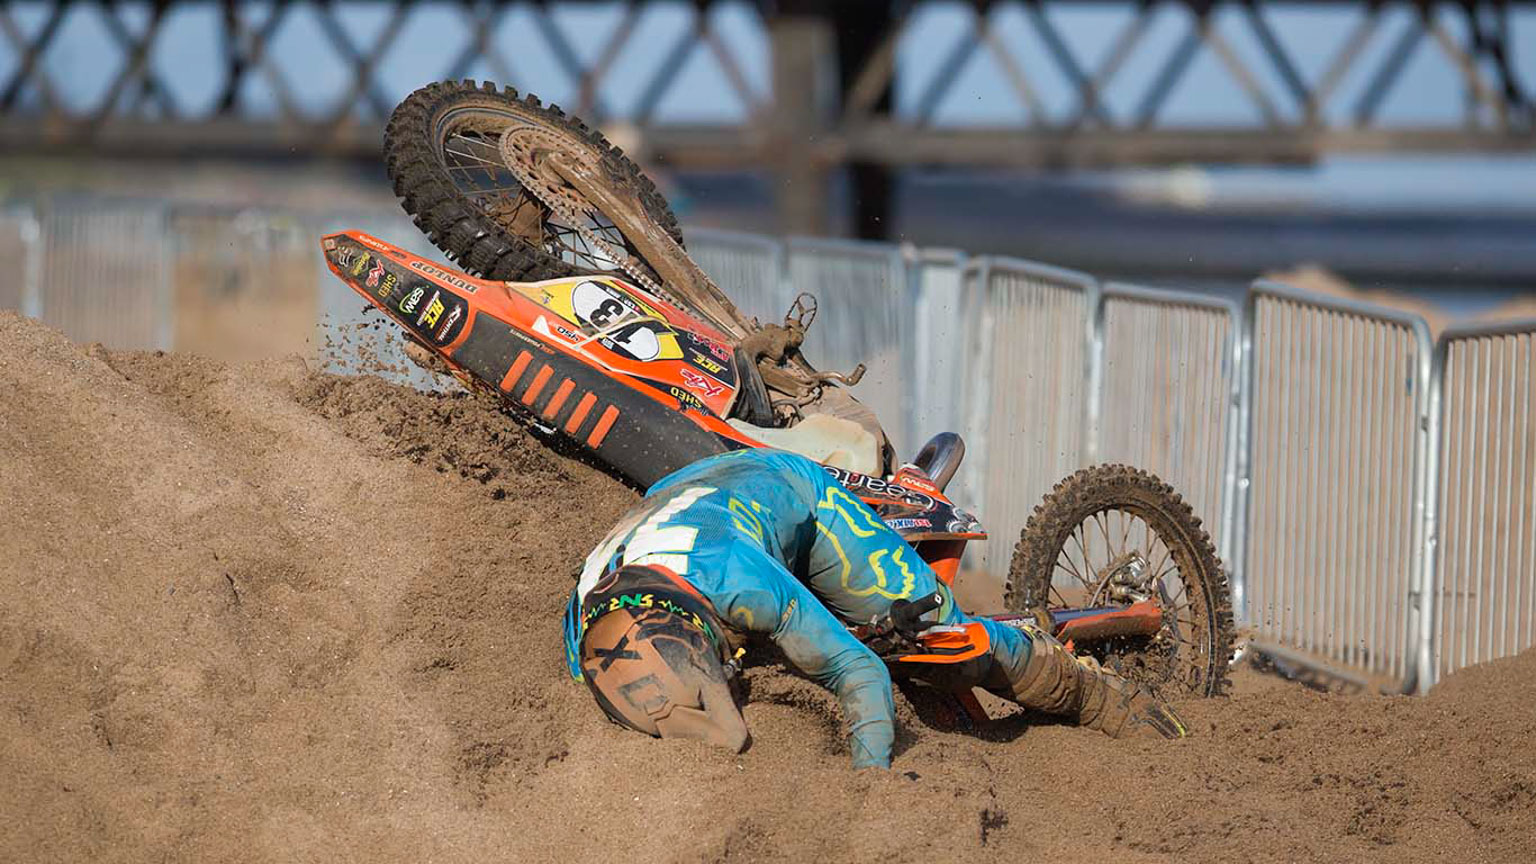 Sean Wainwright (KTM) hits the sand